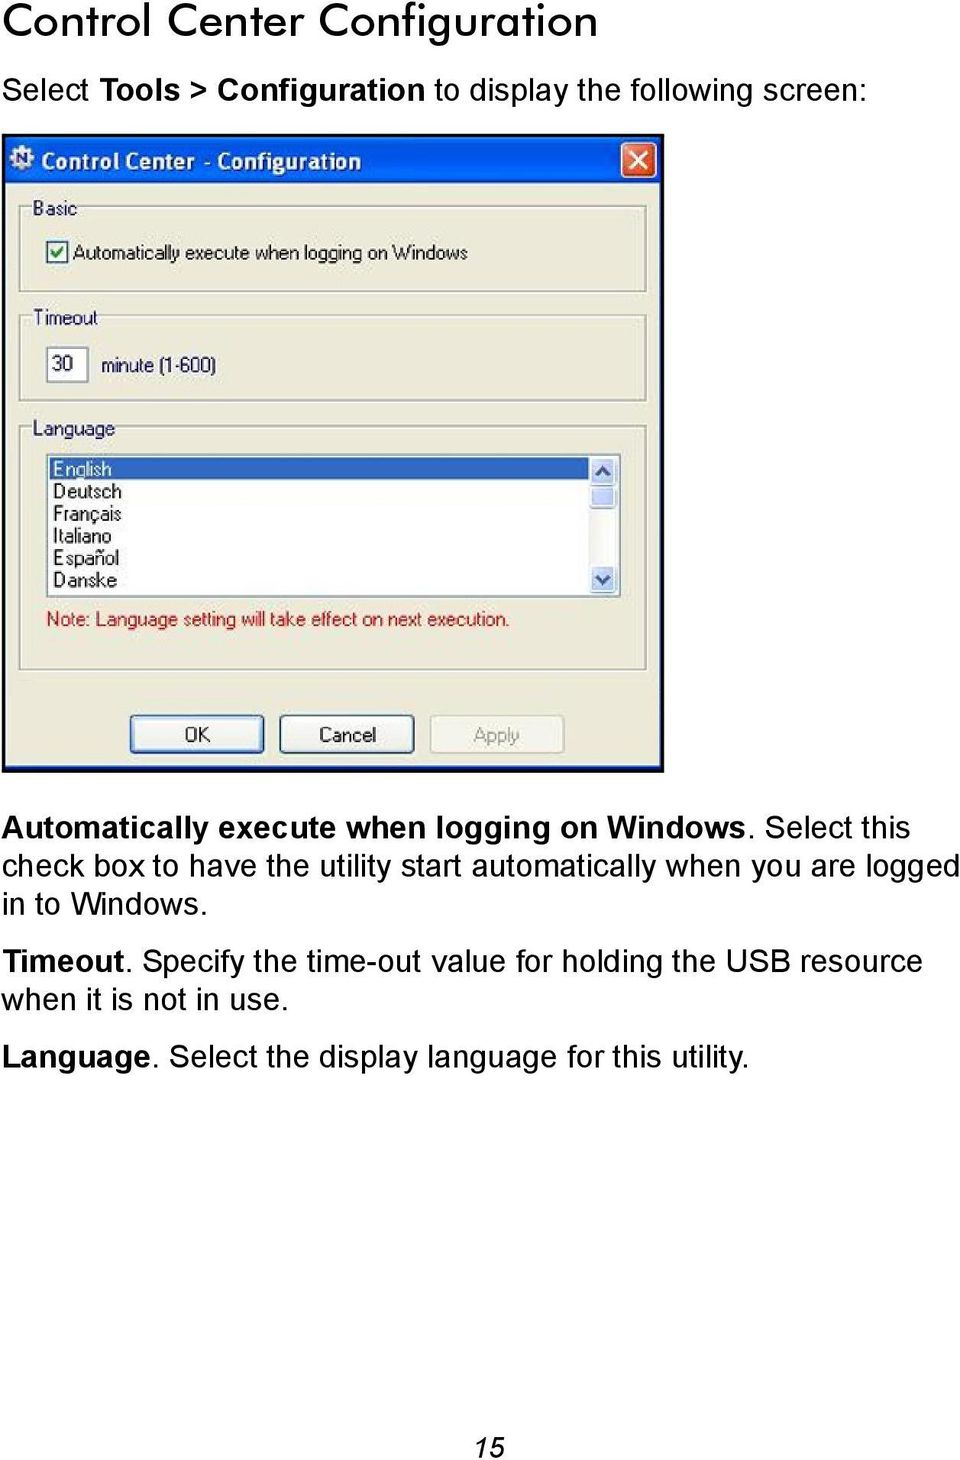 Select this check box to have the utility start automatically when you are logged in to Windows.